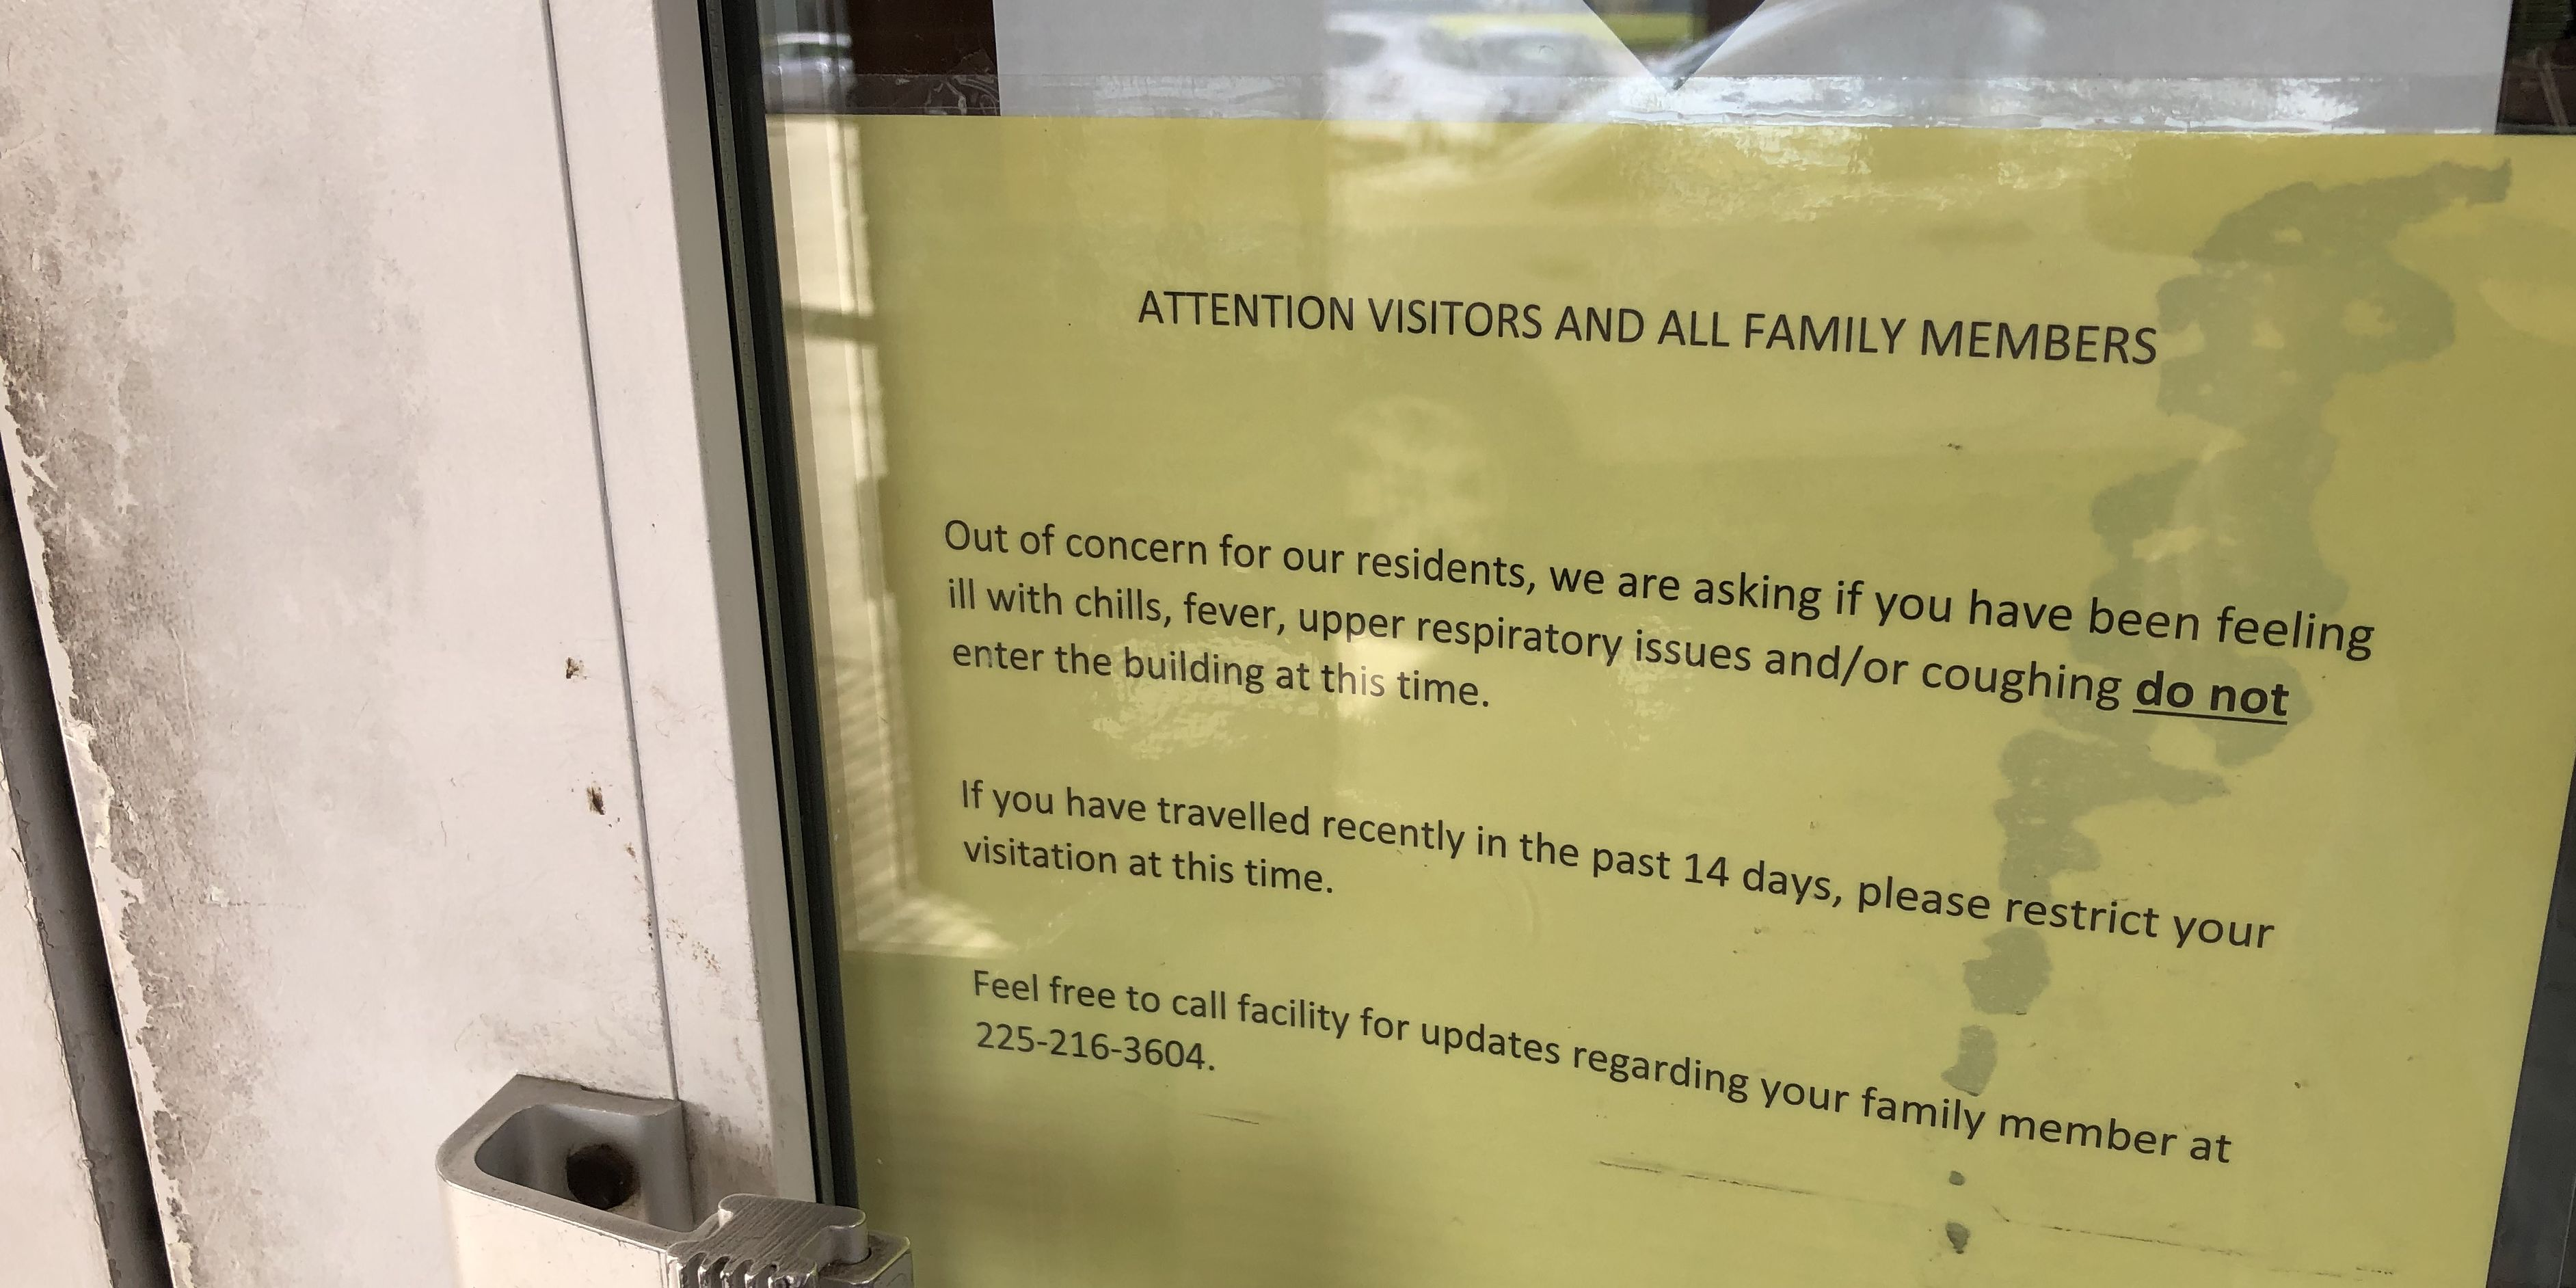 Visitation policies impacted by COVID-19